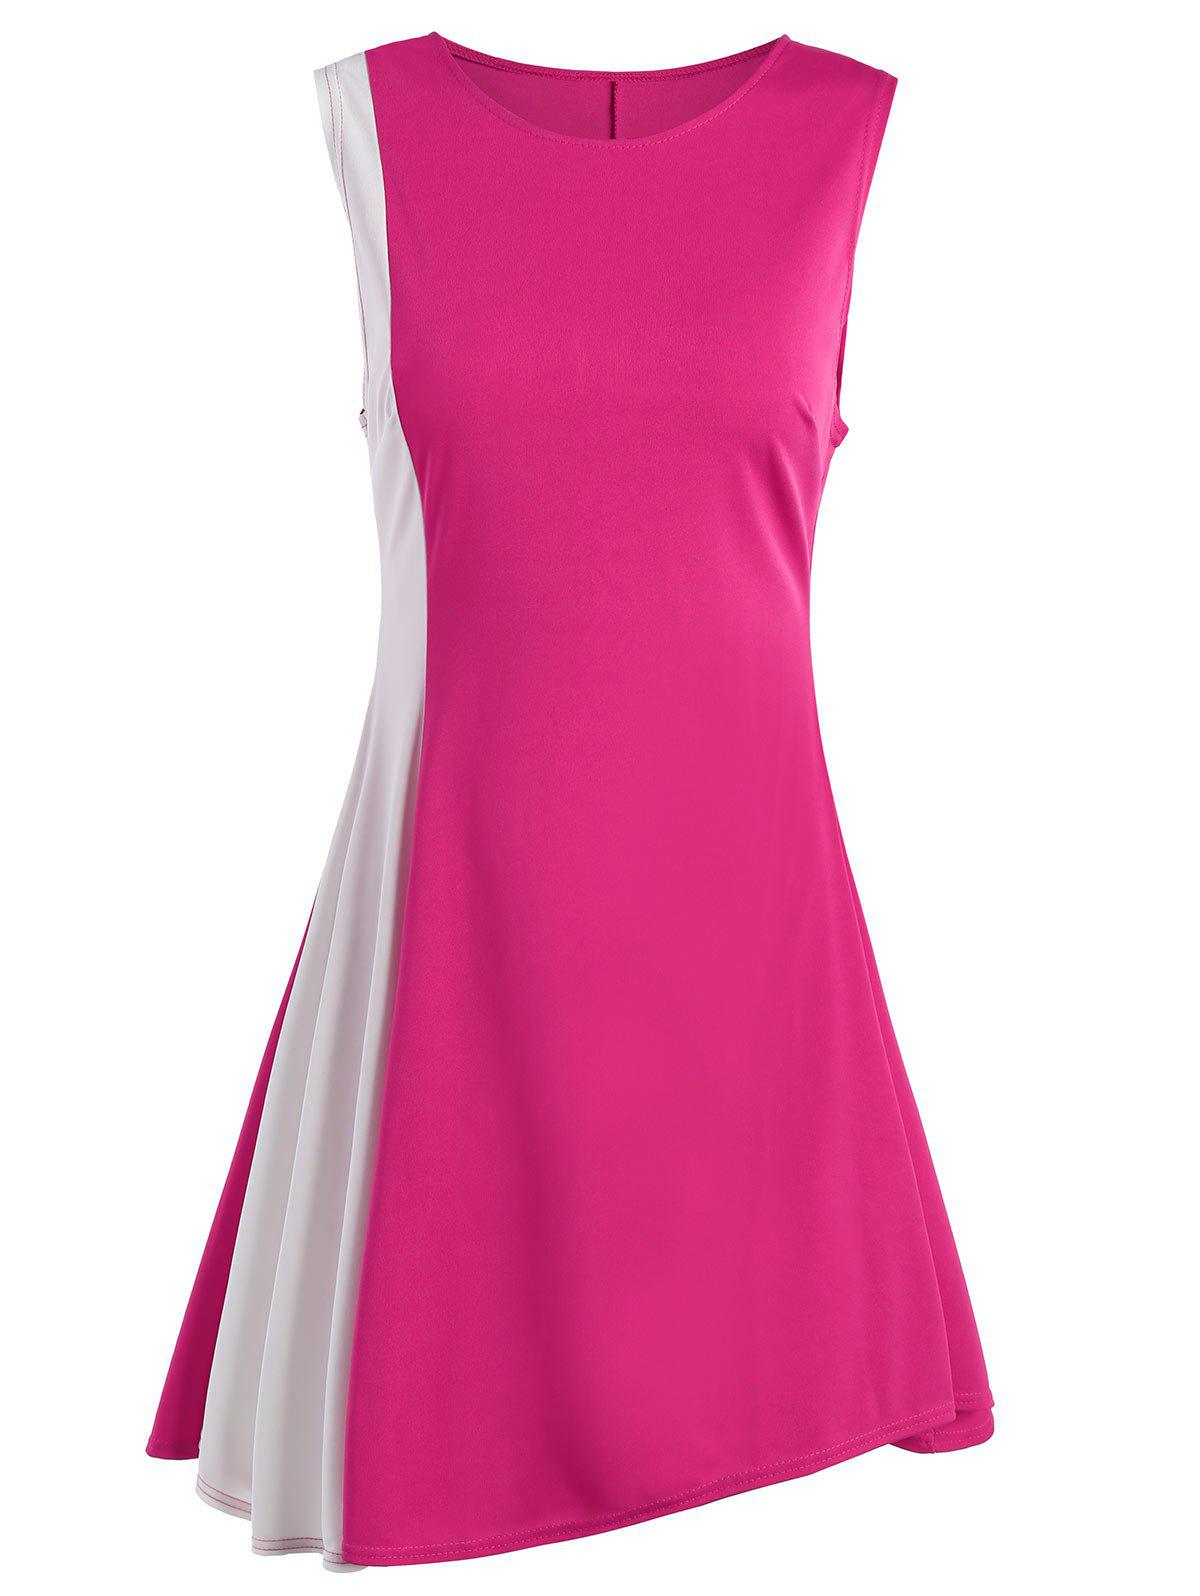 Two Tone A Line Sleeveless Dress - ROSE MADDER XL